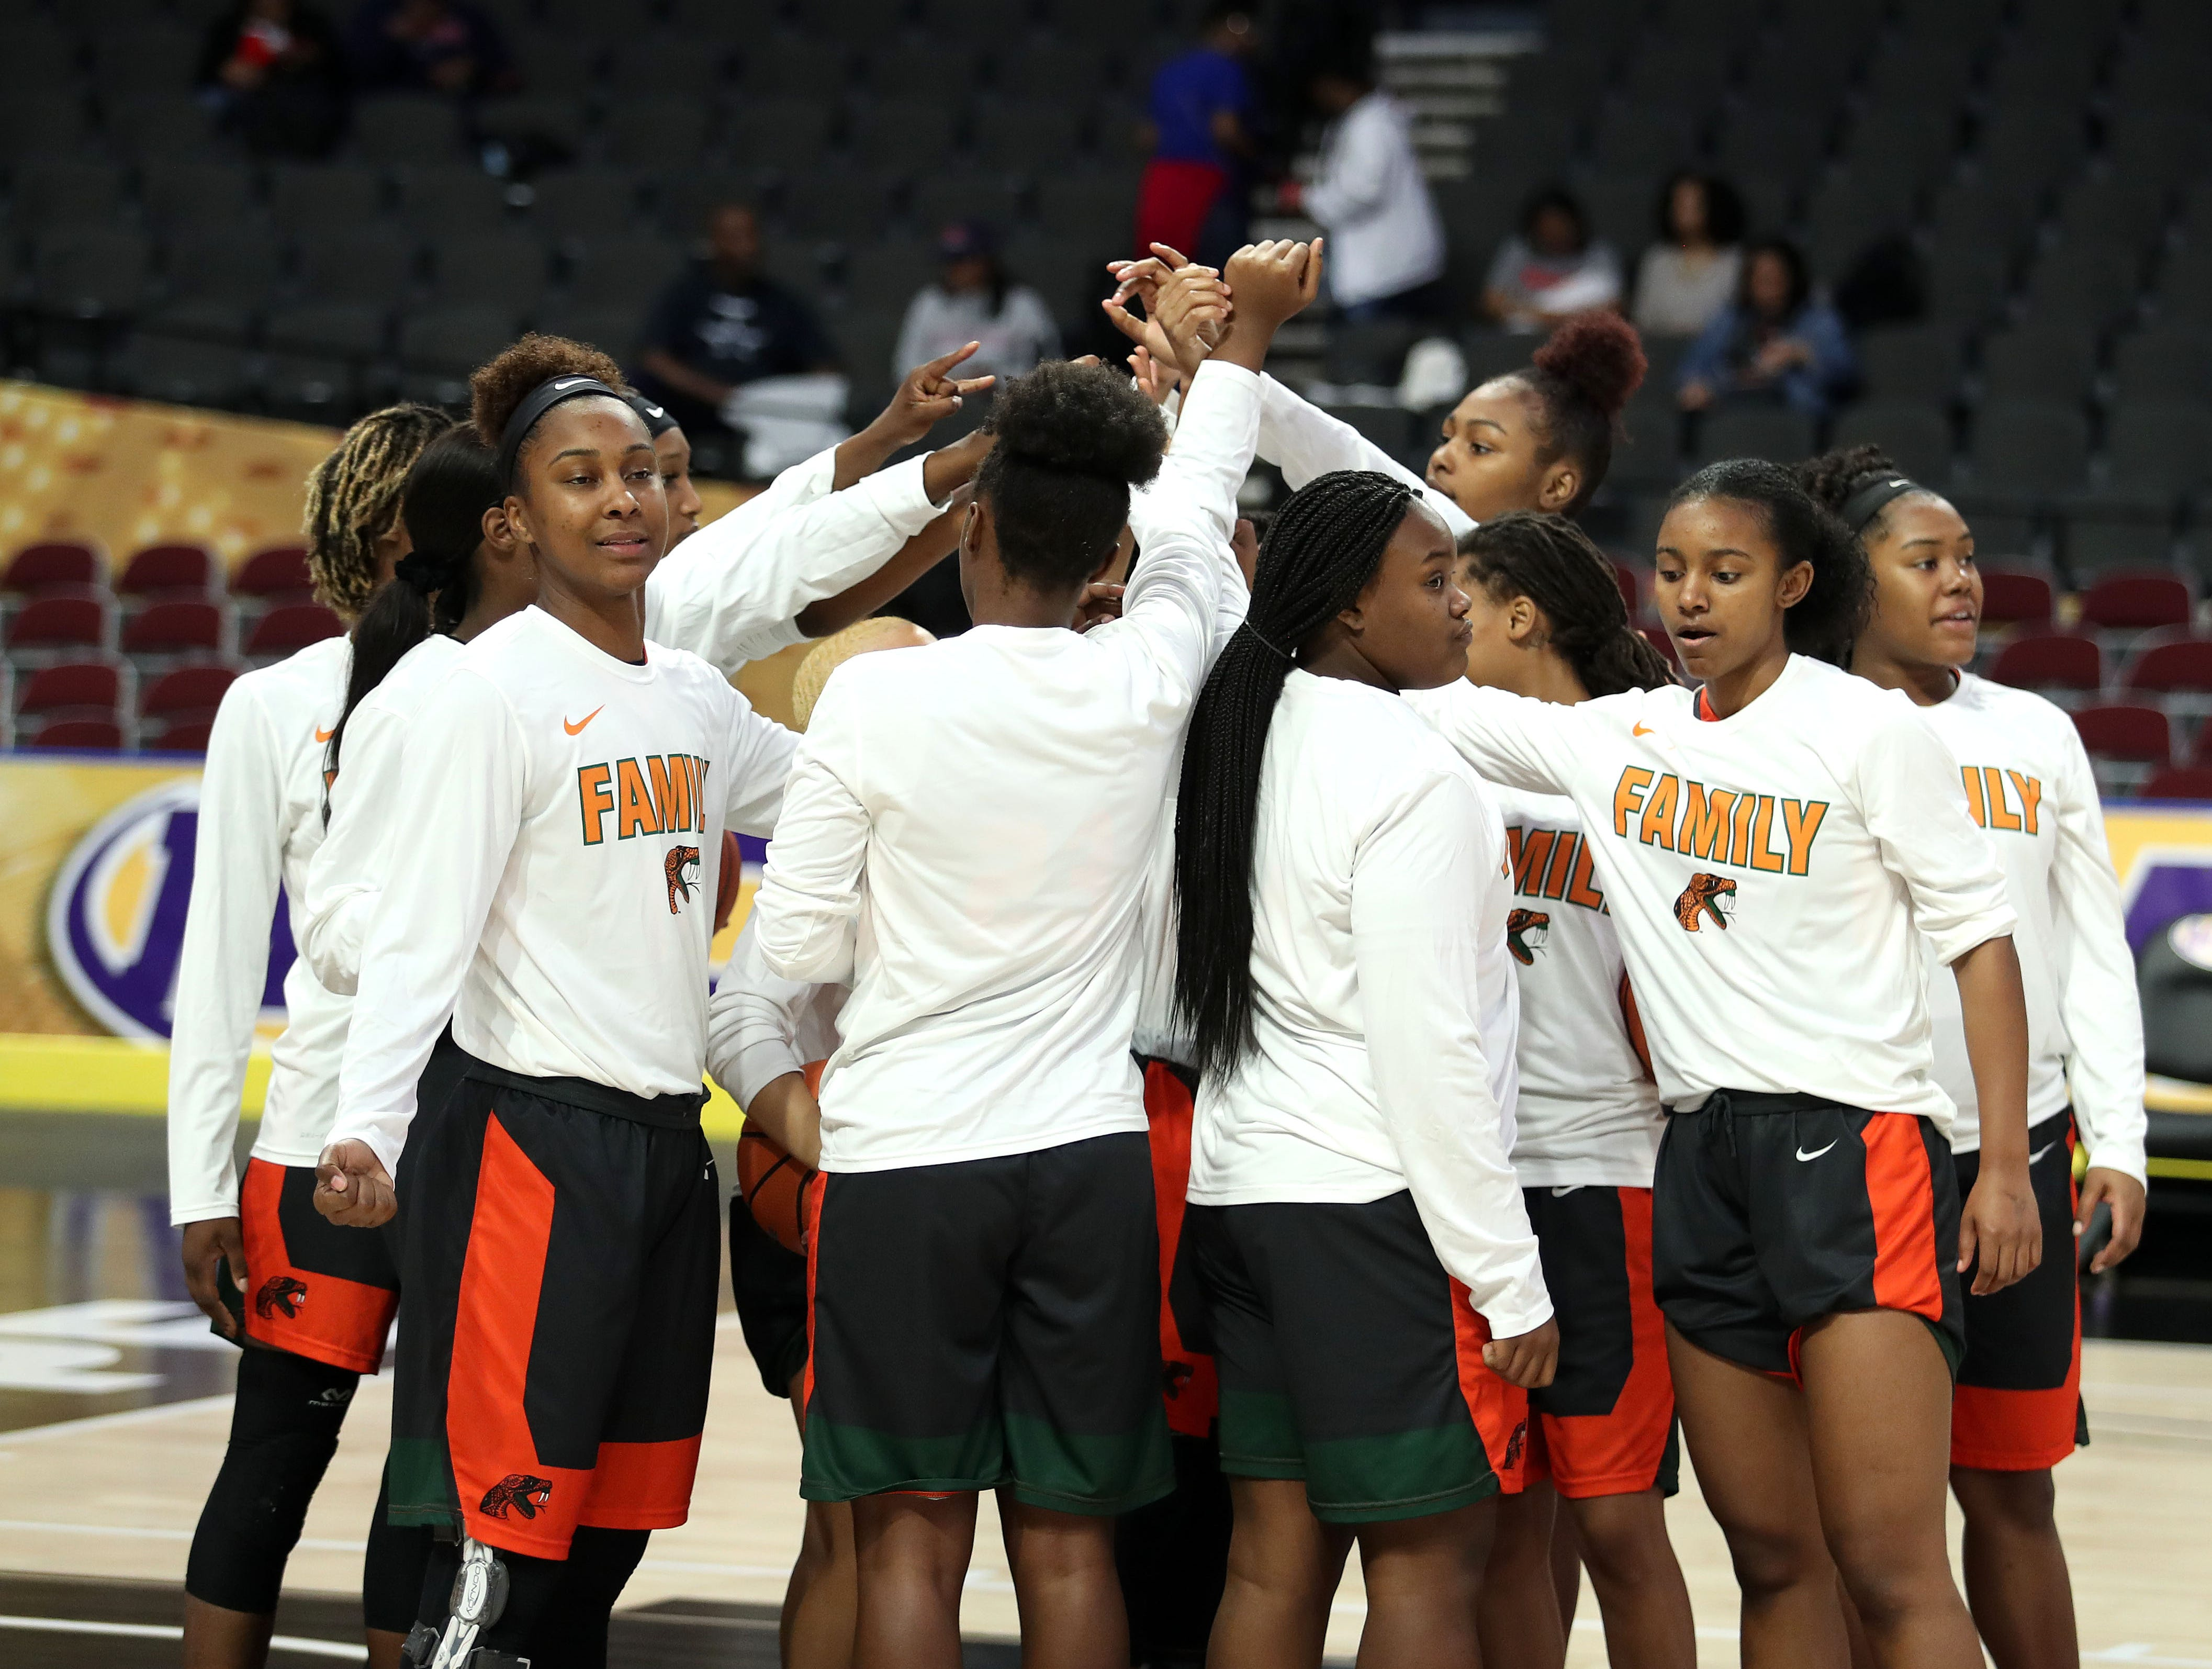 FAMU players unite prior to the opening tip of the MEAC tournament game versus Howard on Monday, March 11, 2019.